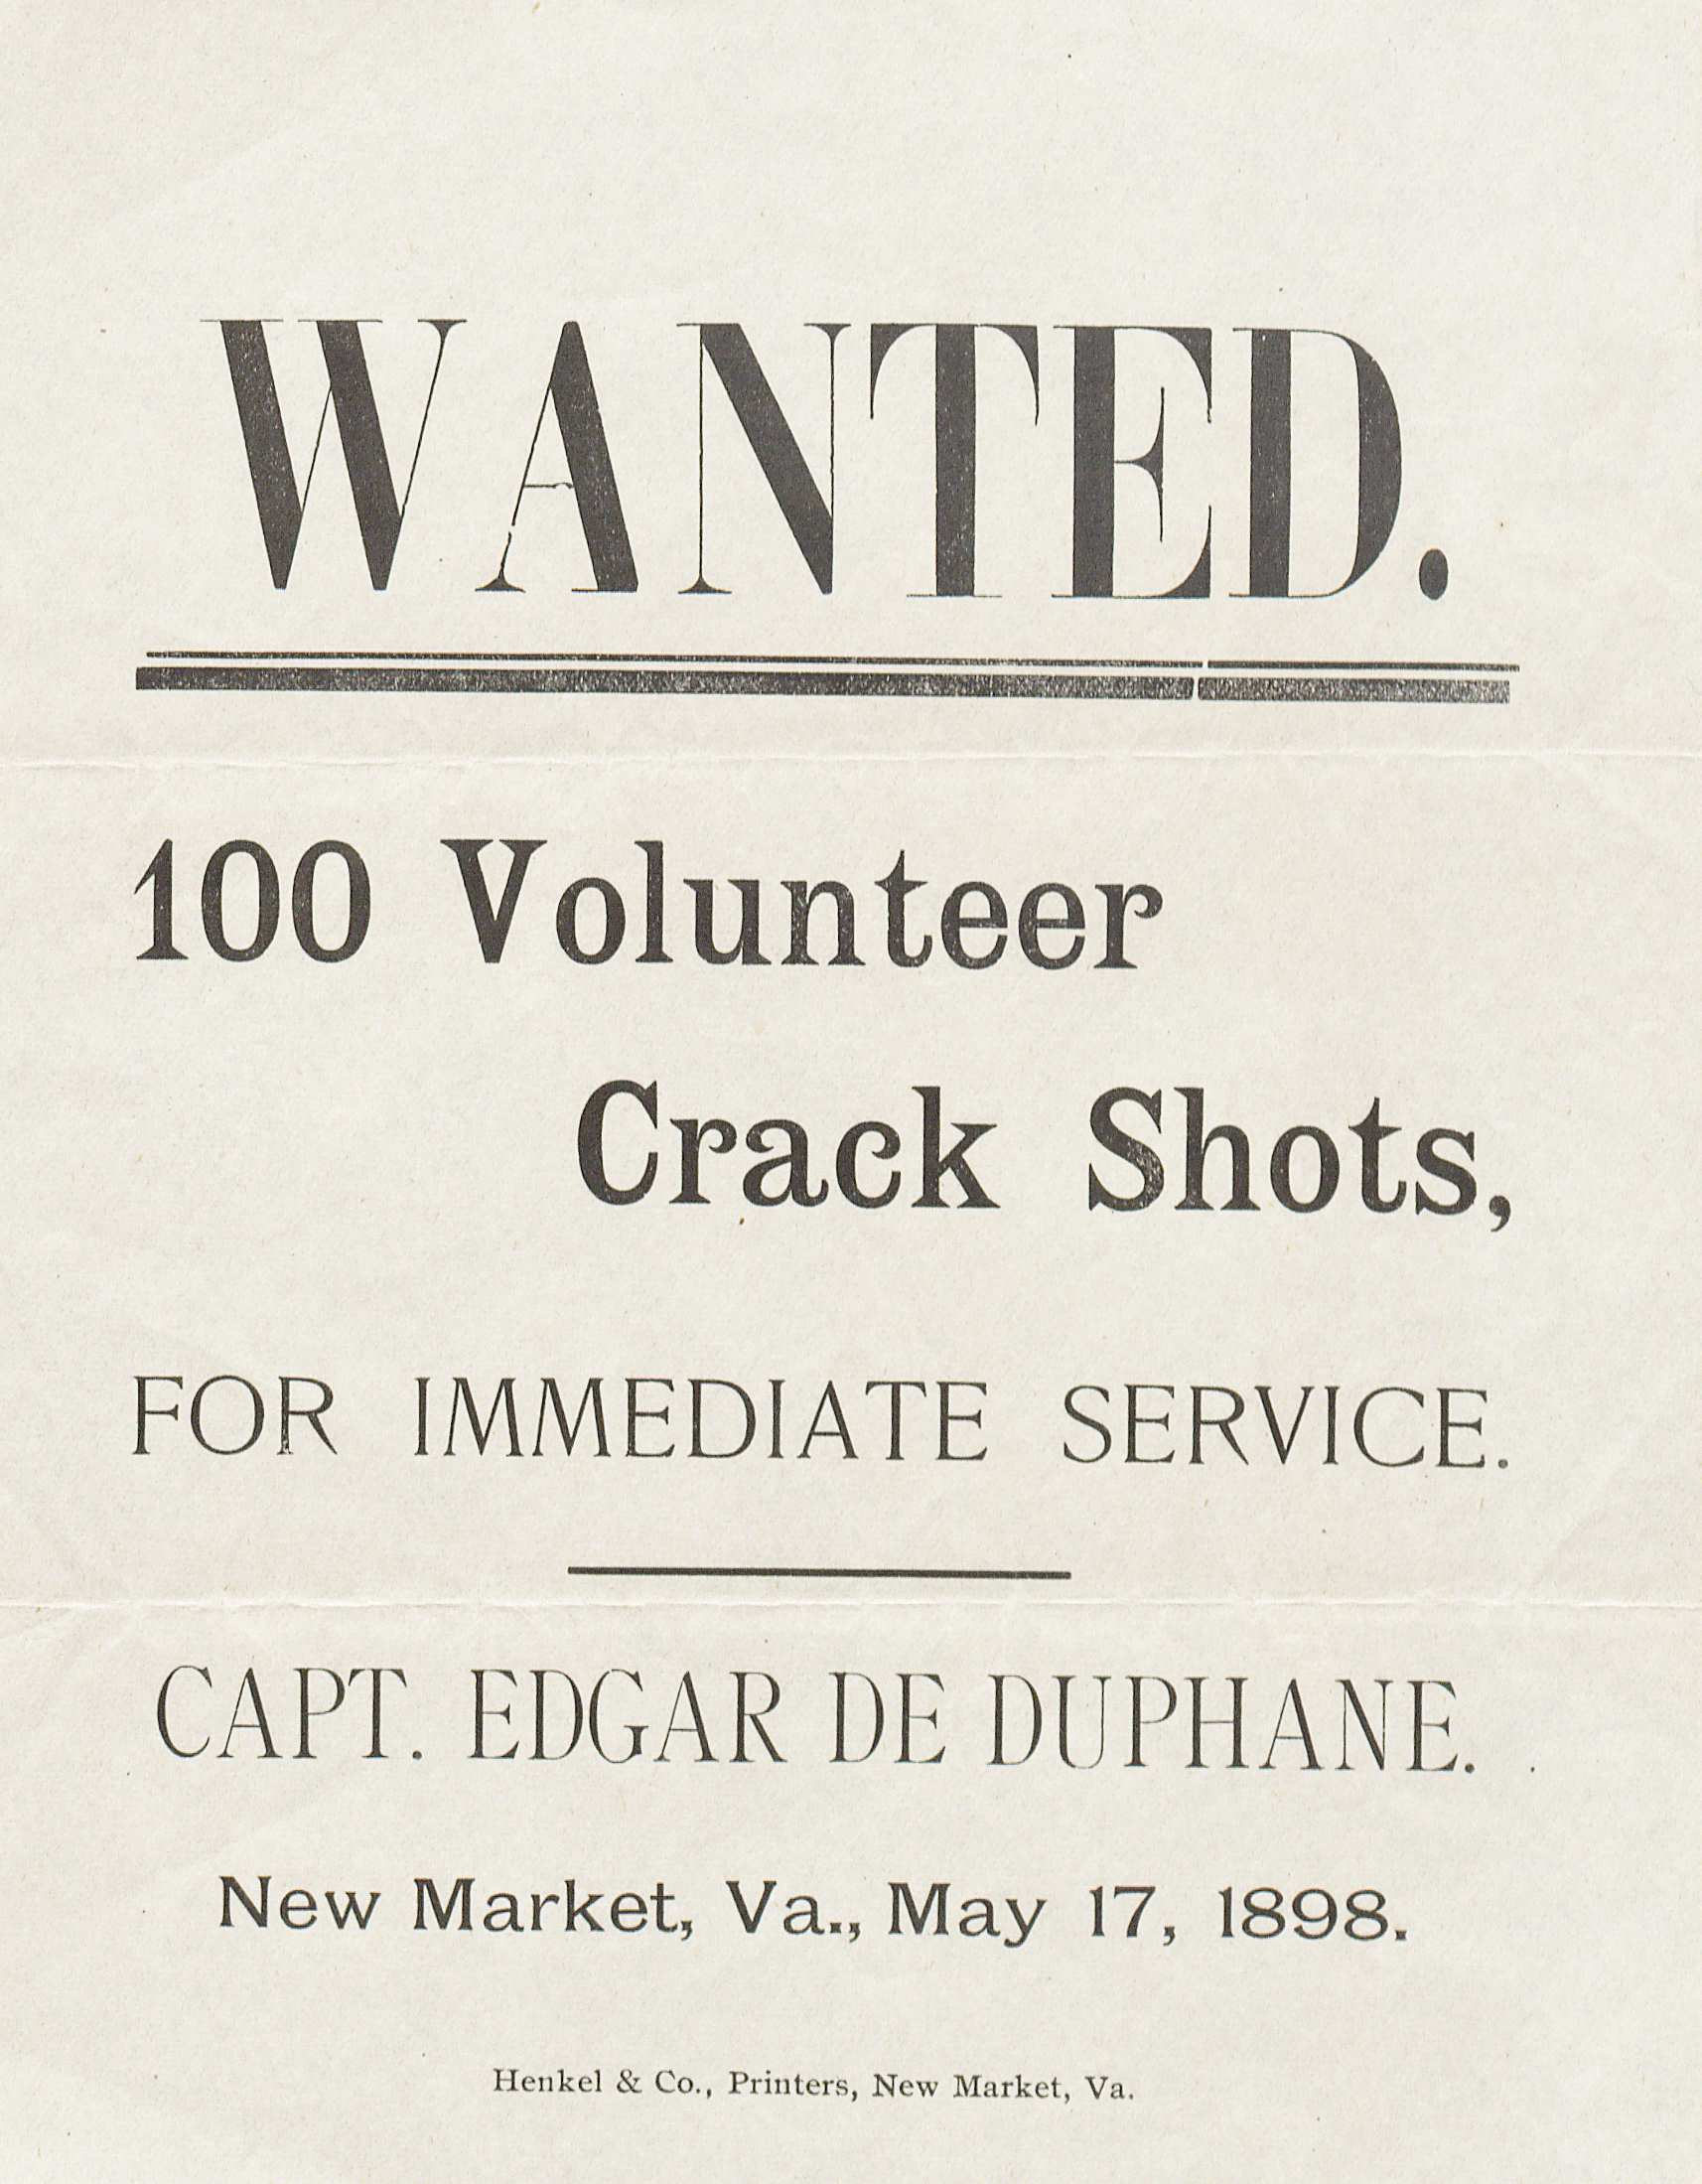 Capt. Edgar de Duphane. Wanted. 100 Volunteer Crack Shots, for Immediate Service. New Market, VA: Henkel & Co., Printers, 1898. (Broadside 1898 .D84) Captain Edgar de Duphane posted this message in New Market, Virginia to encourage proficient shooters to join the US Army at the outbreak of the Spanish American War. These shooters would then be shipped off to various camps throughout the country for integration into the army. From there, they would be sent to participate in the fighting against Spanish forces.